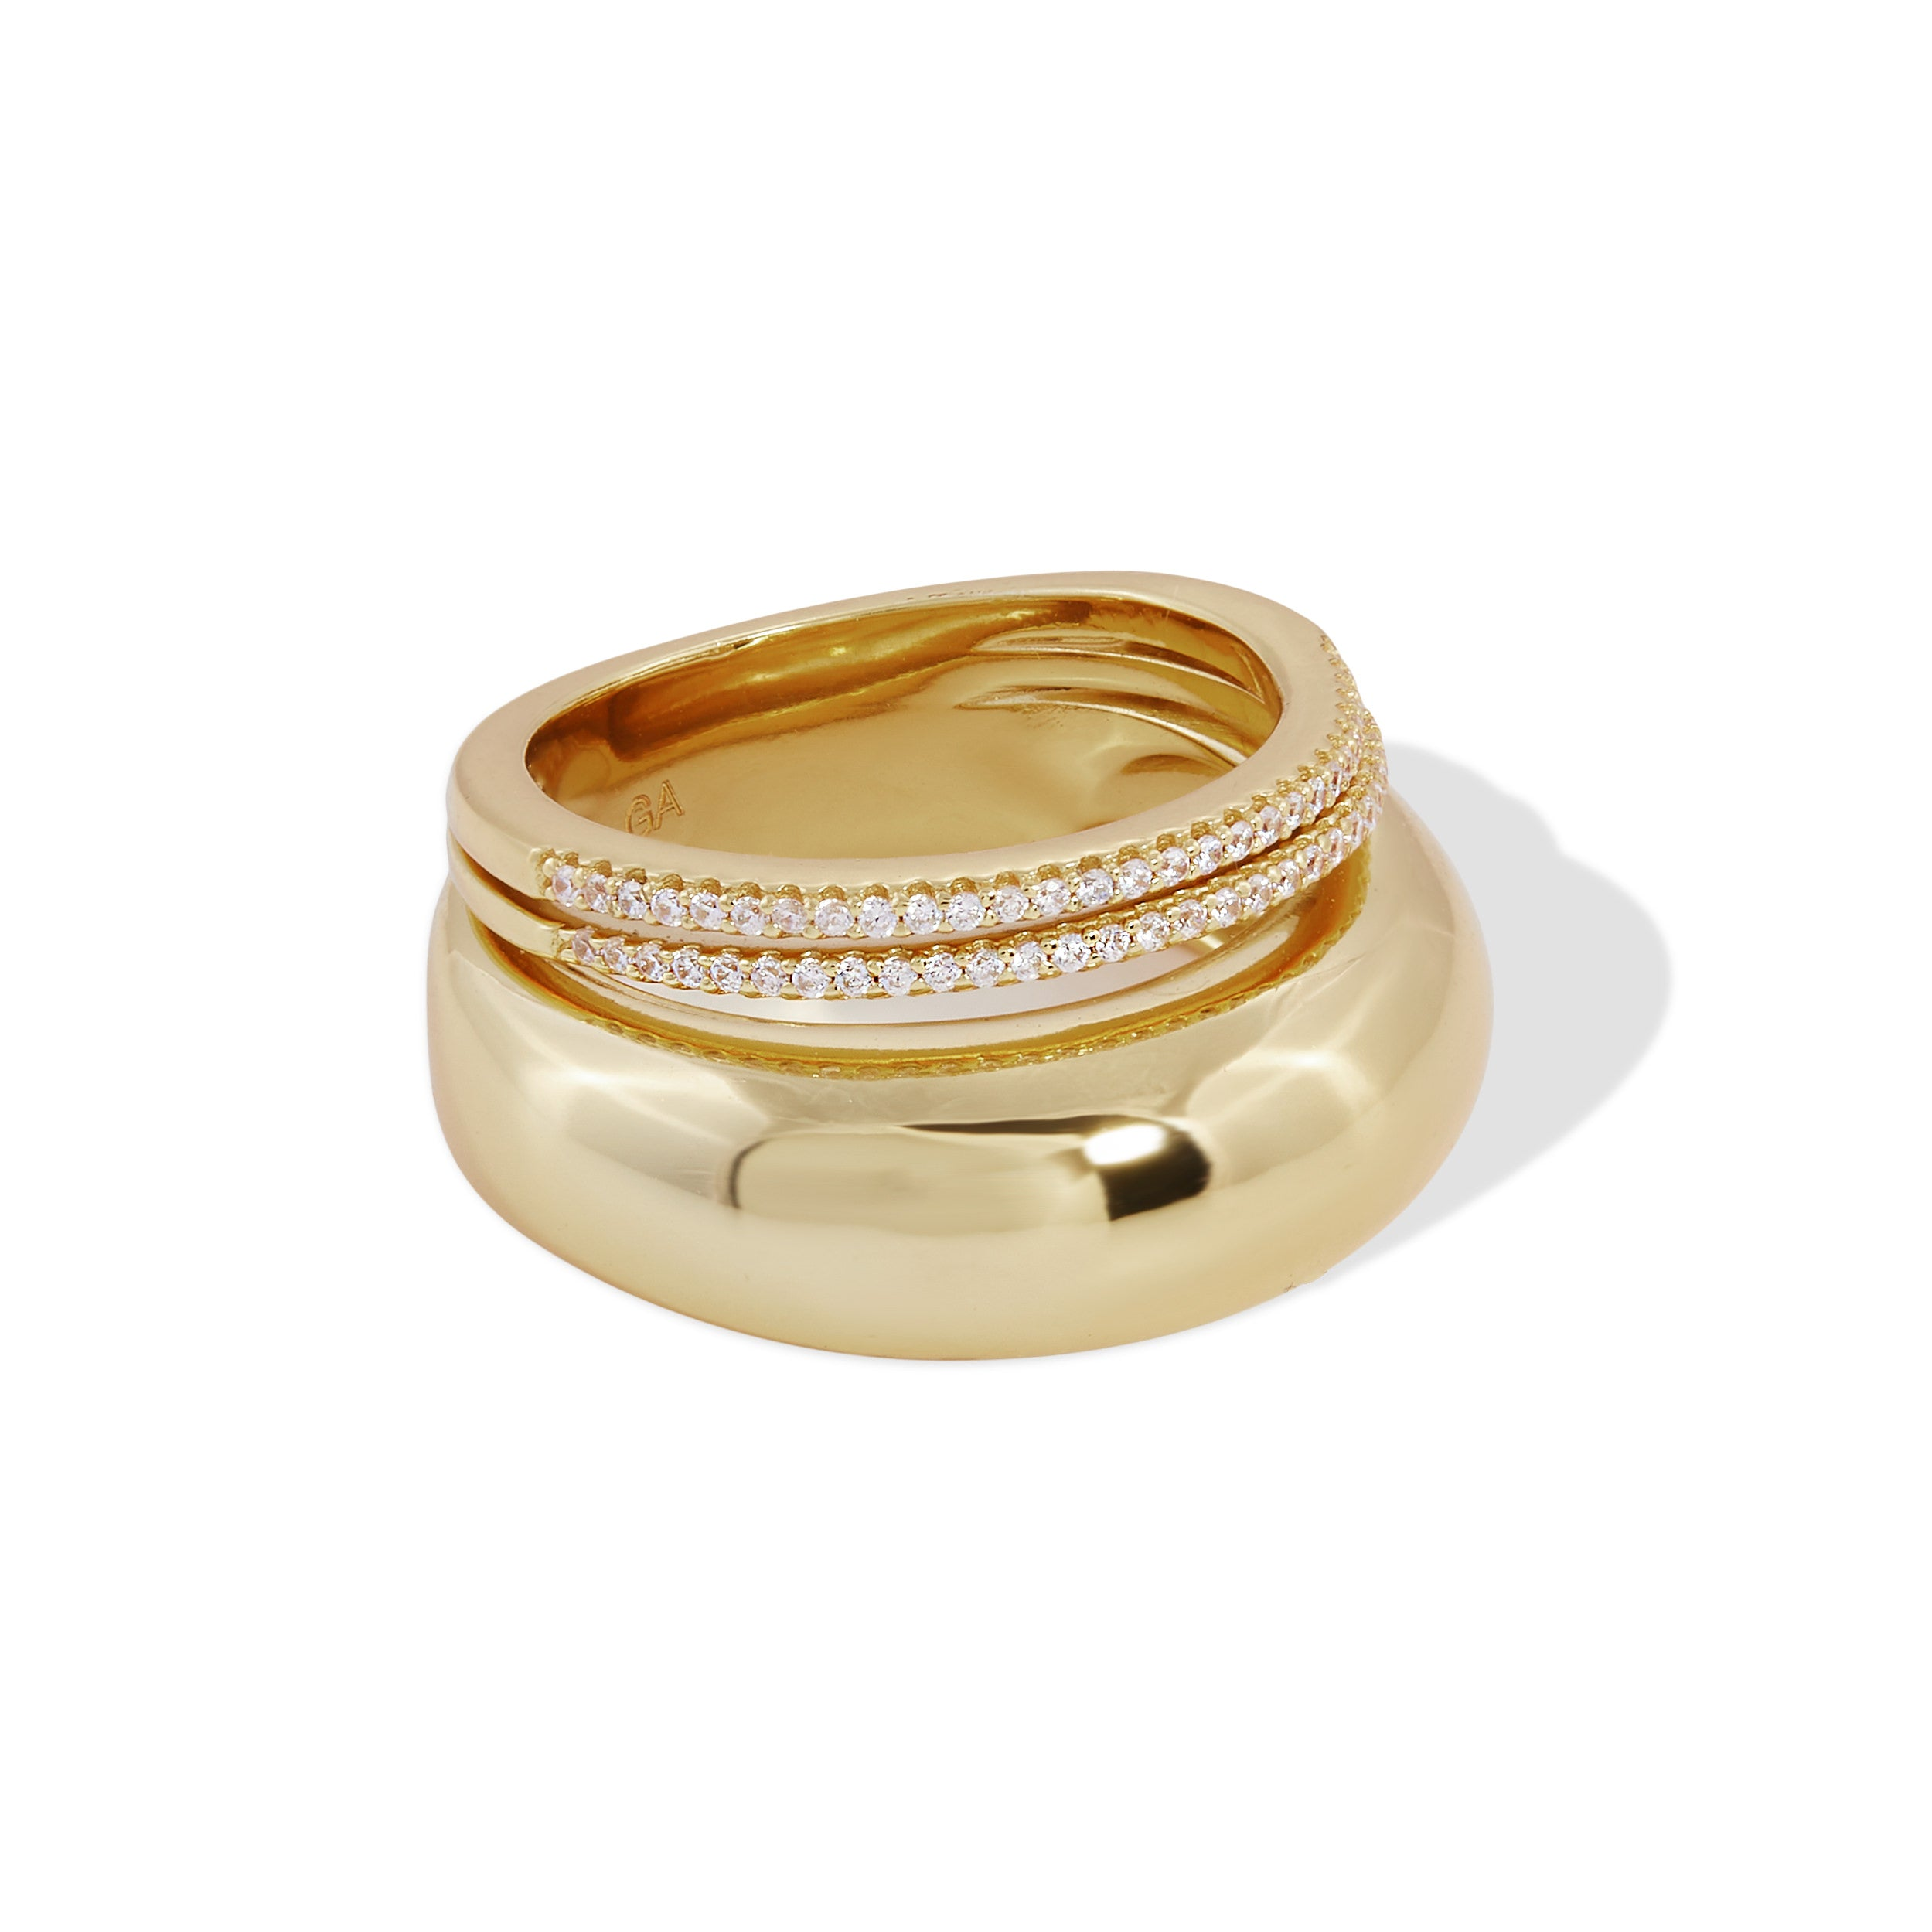 Image of Sabrina gold vermeil ring